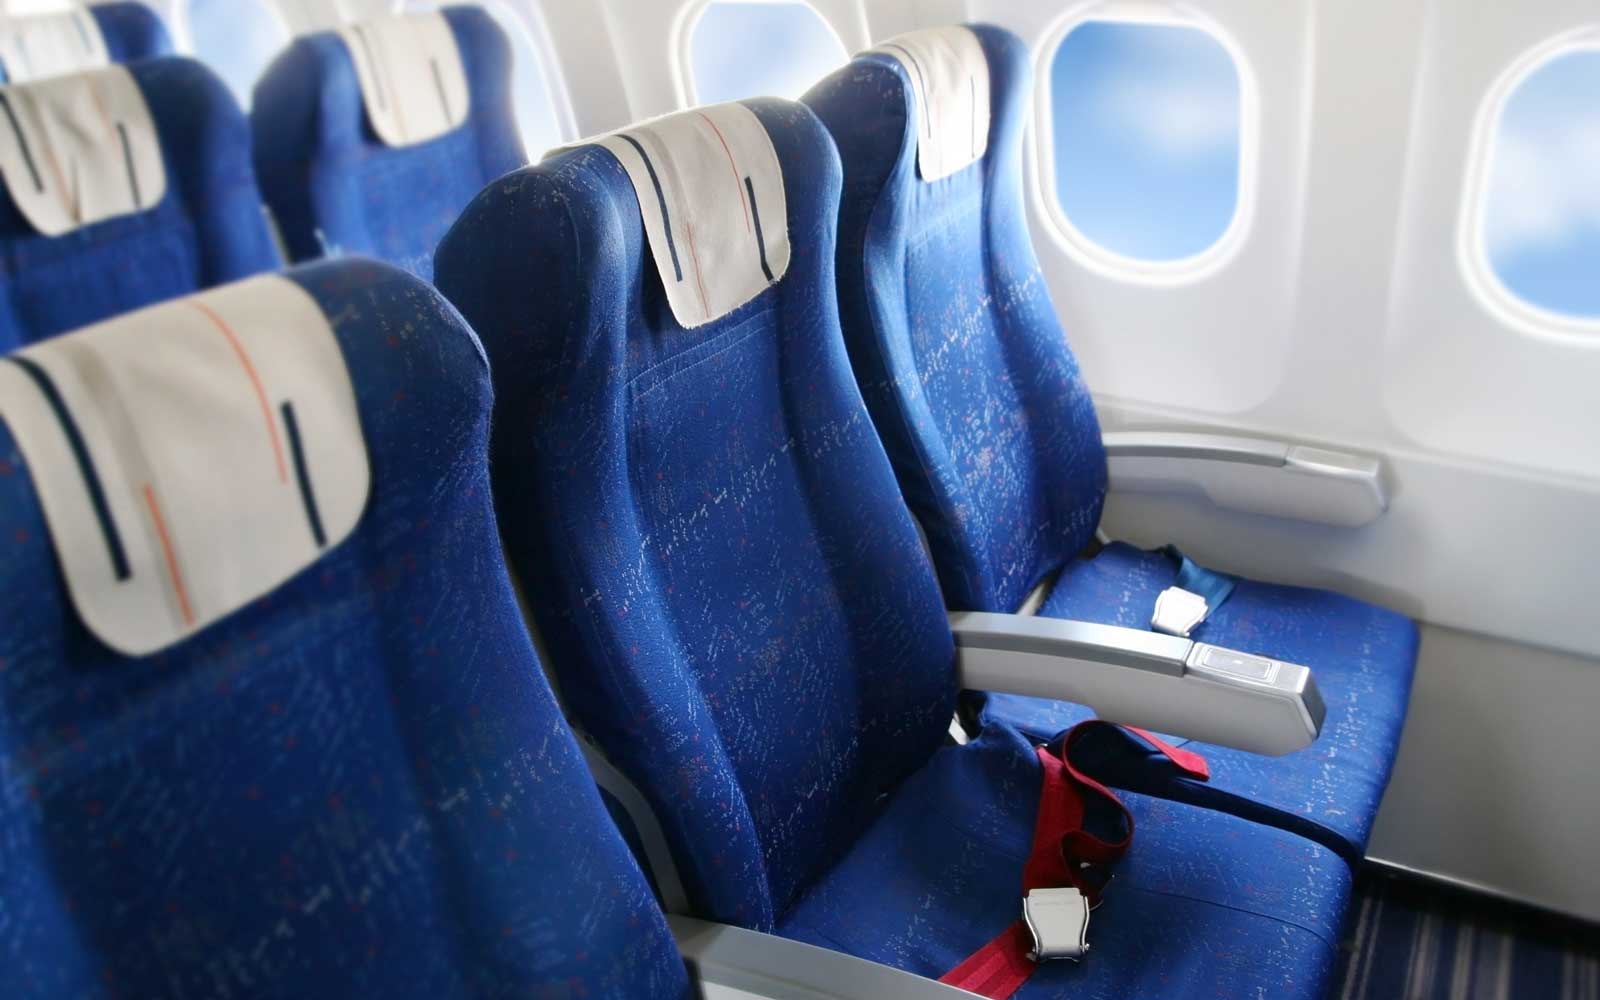 Row of seats in a commercial airplane cabin